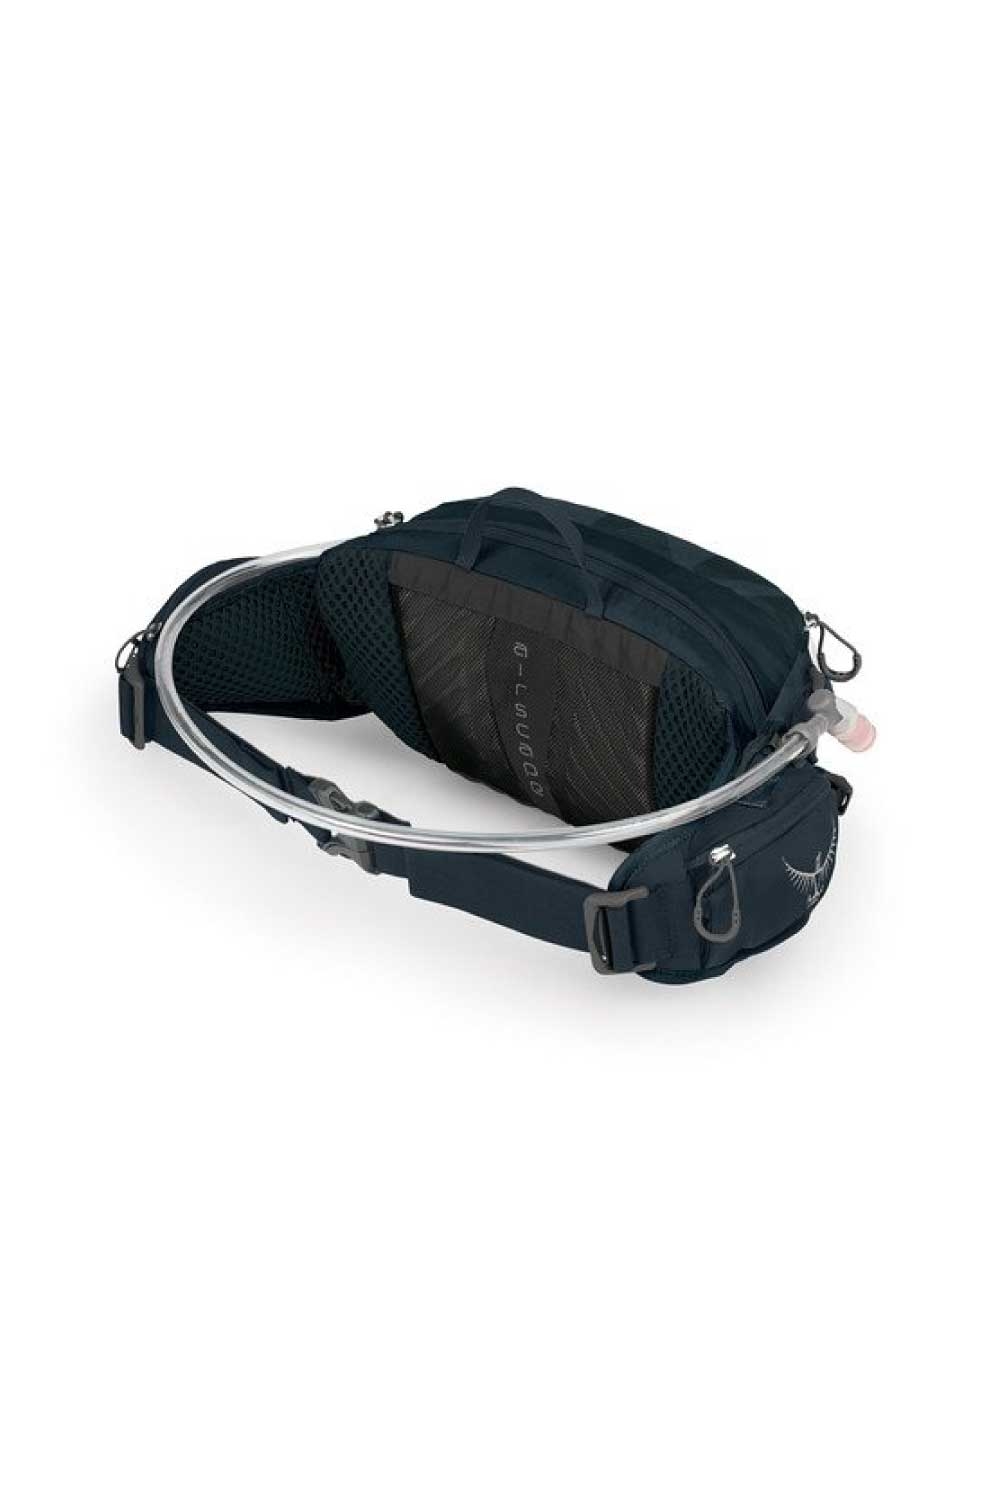 Osprey Seral Hip Pack with 1.5L Water Reservoir